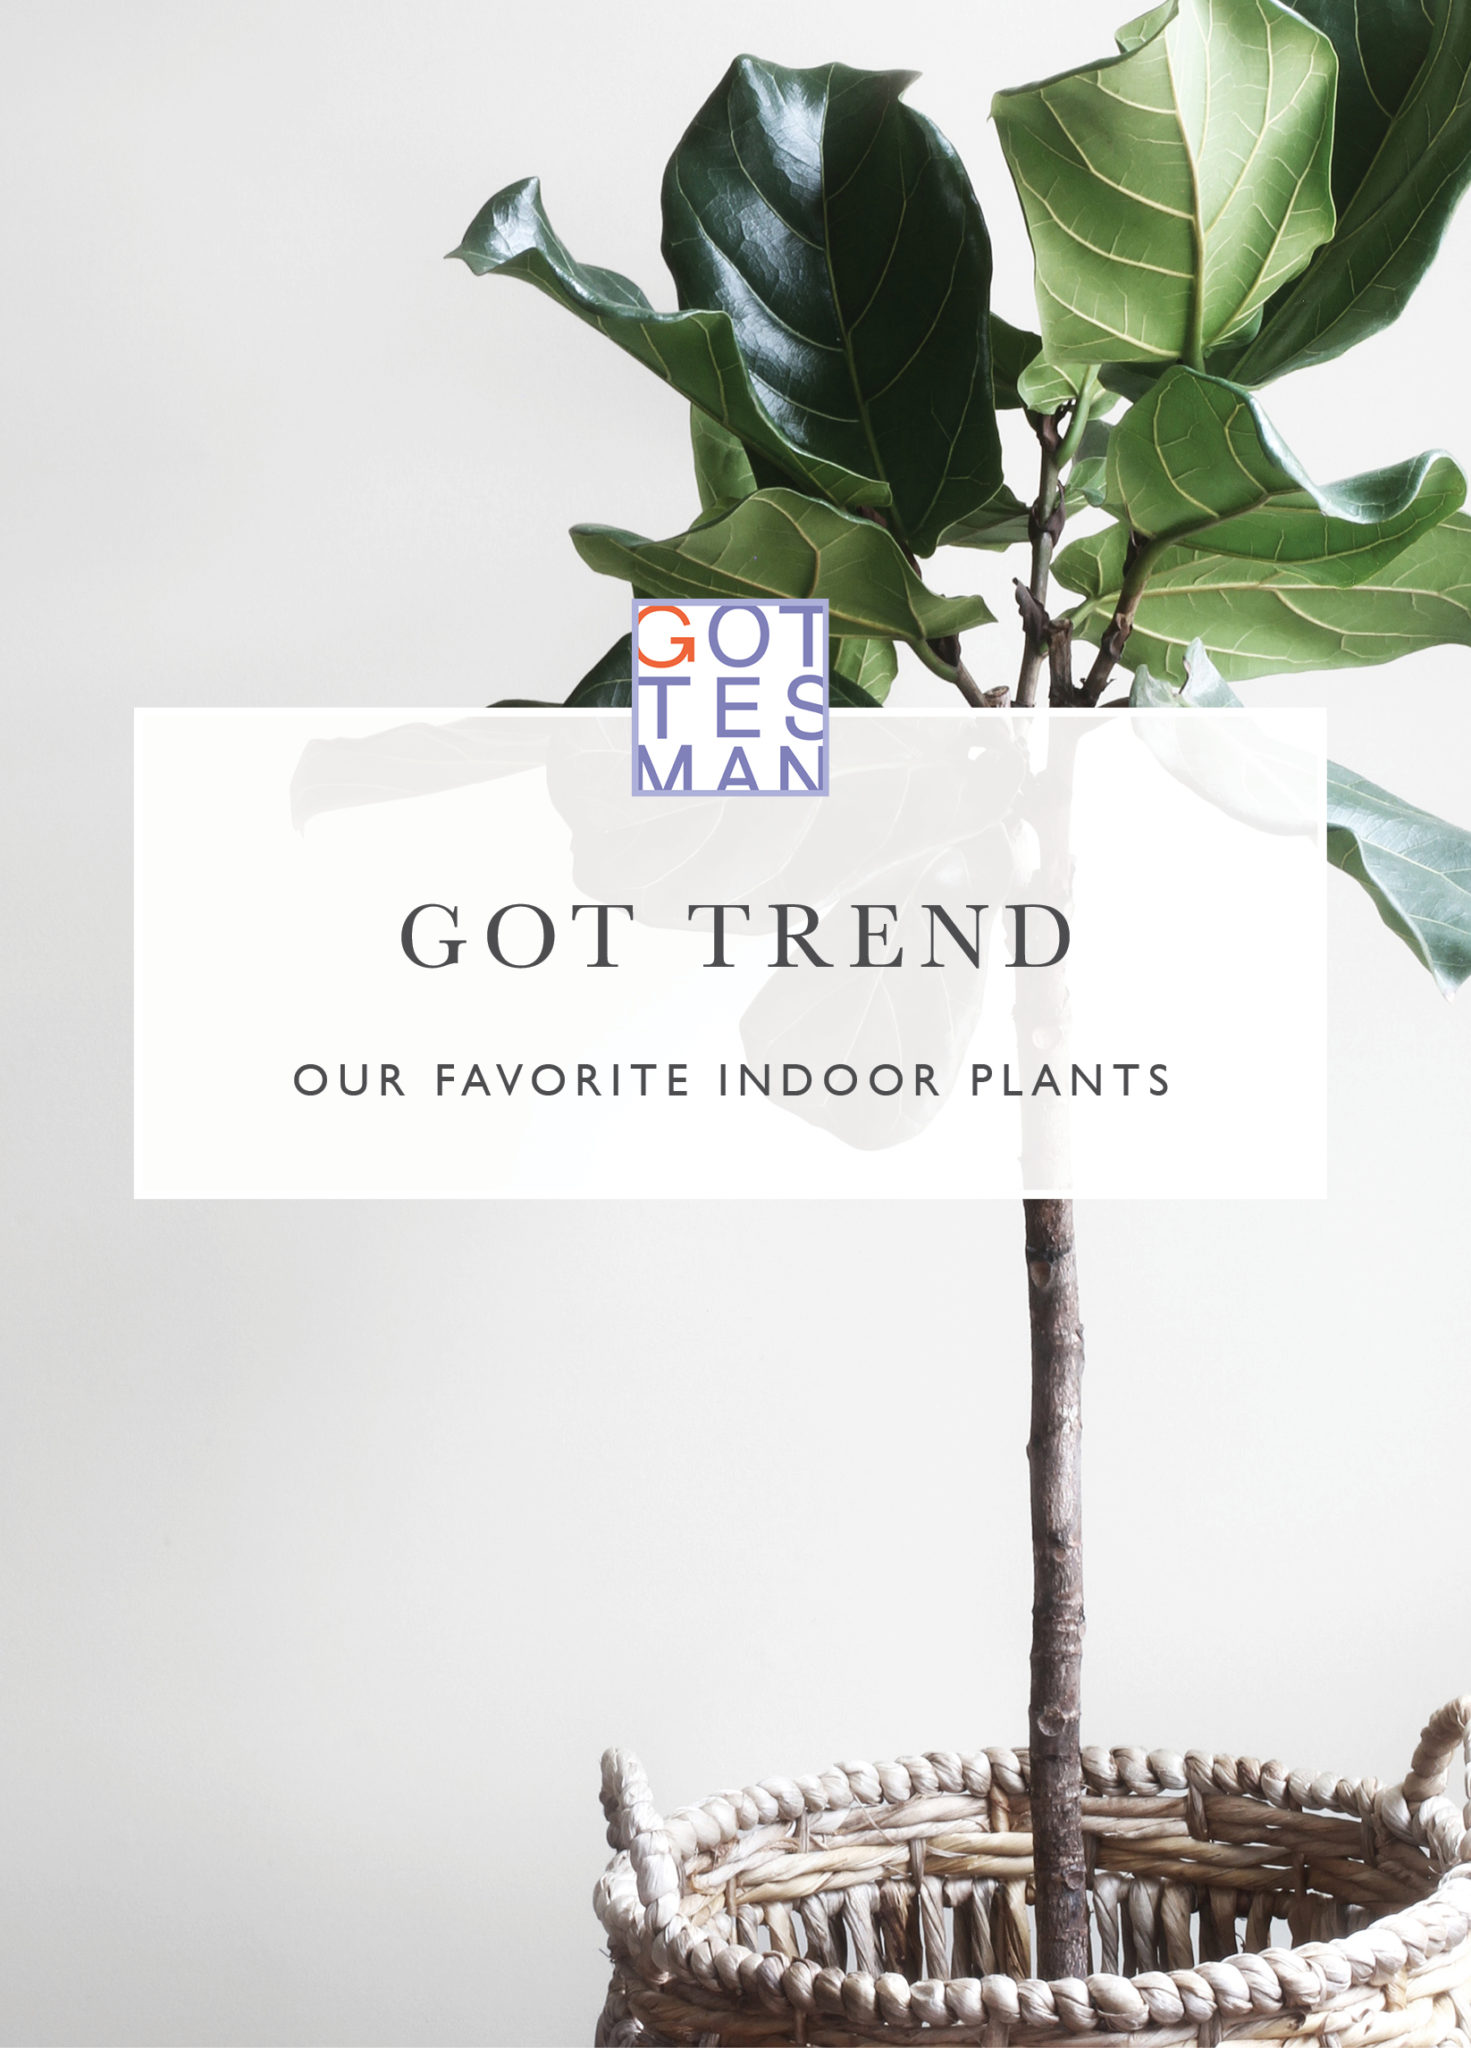 GOT TREND: Our Favorite Indoor Plants - Gottesman